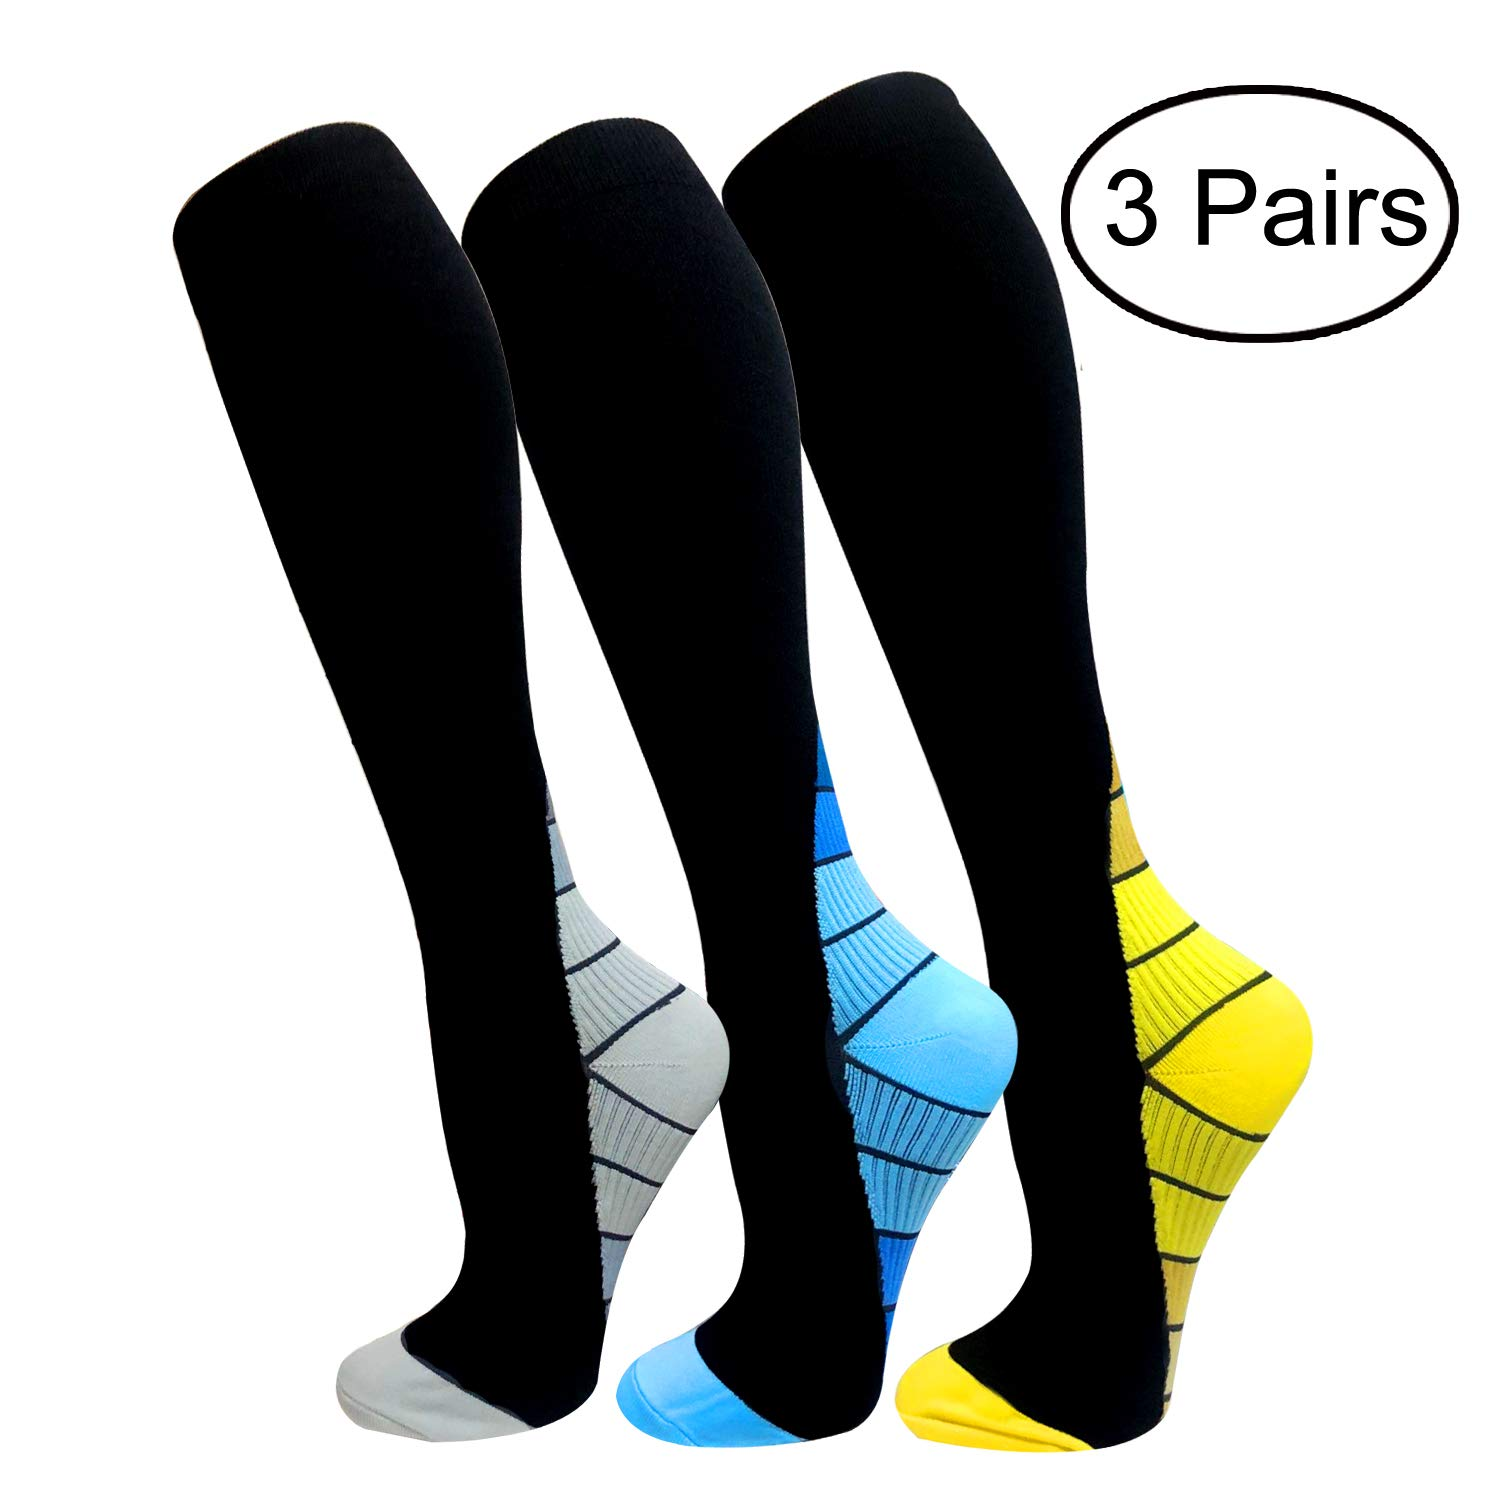 Copper Compression Socks For Men & Women(3 Pairs)- Best For Running,Athletic,Medical,Pregnancy and Travel -15-20mmHg (S/M, Multicoloured 19)